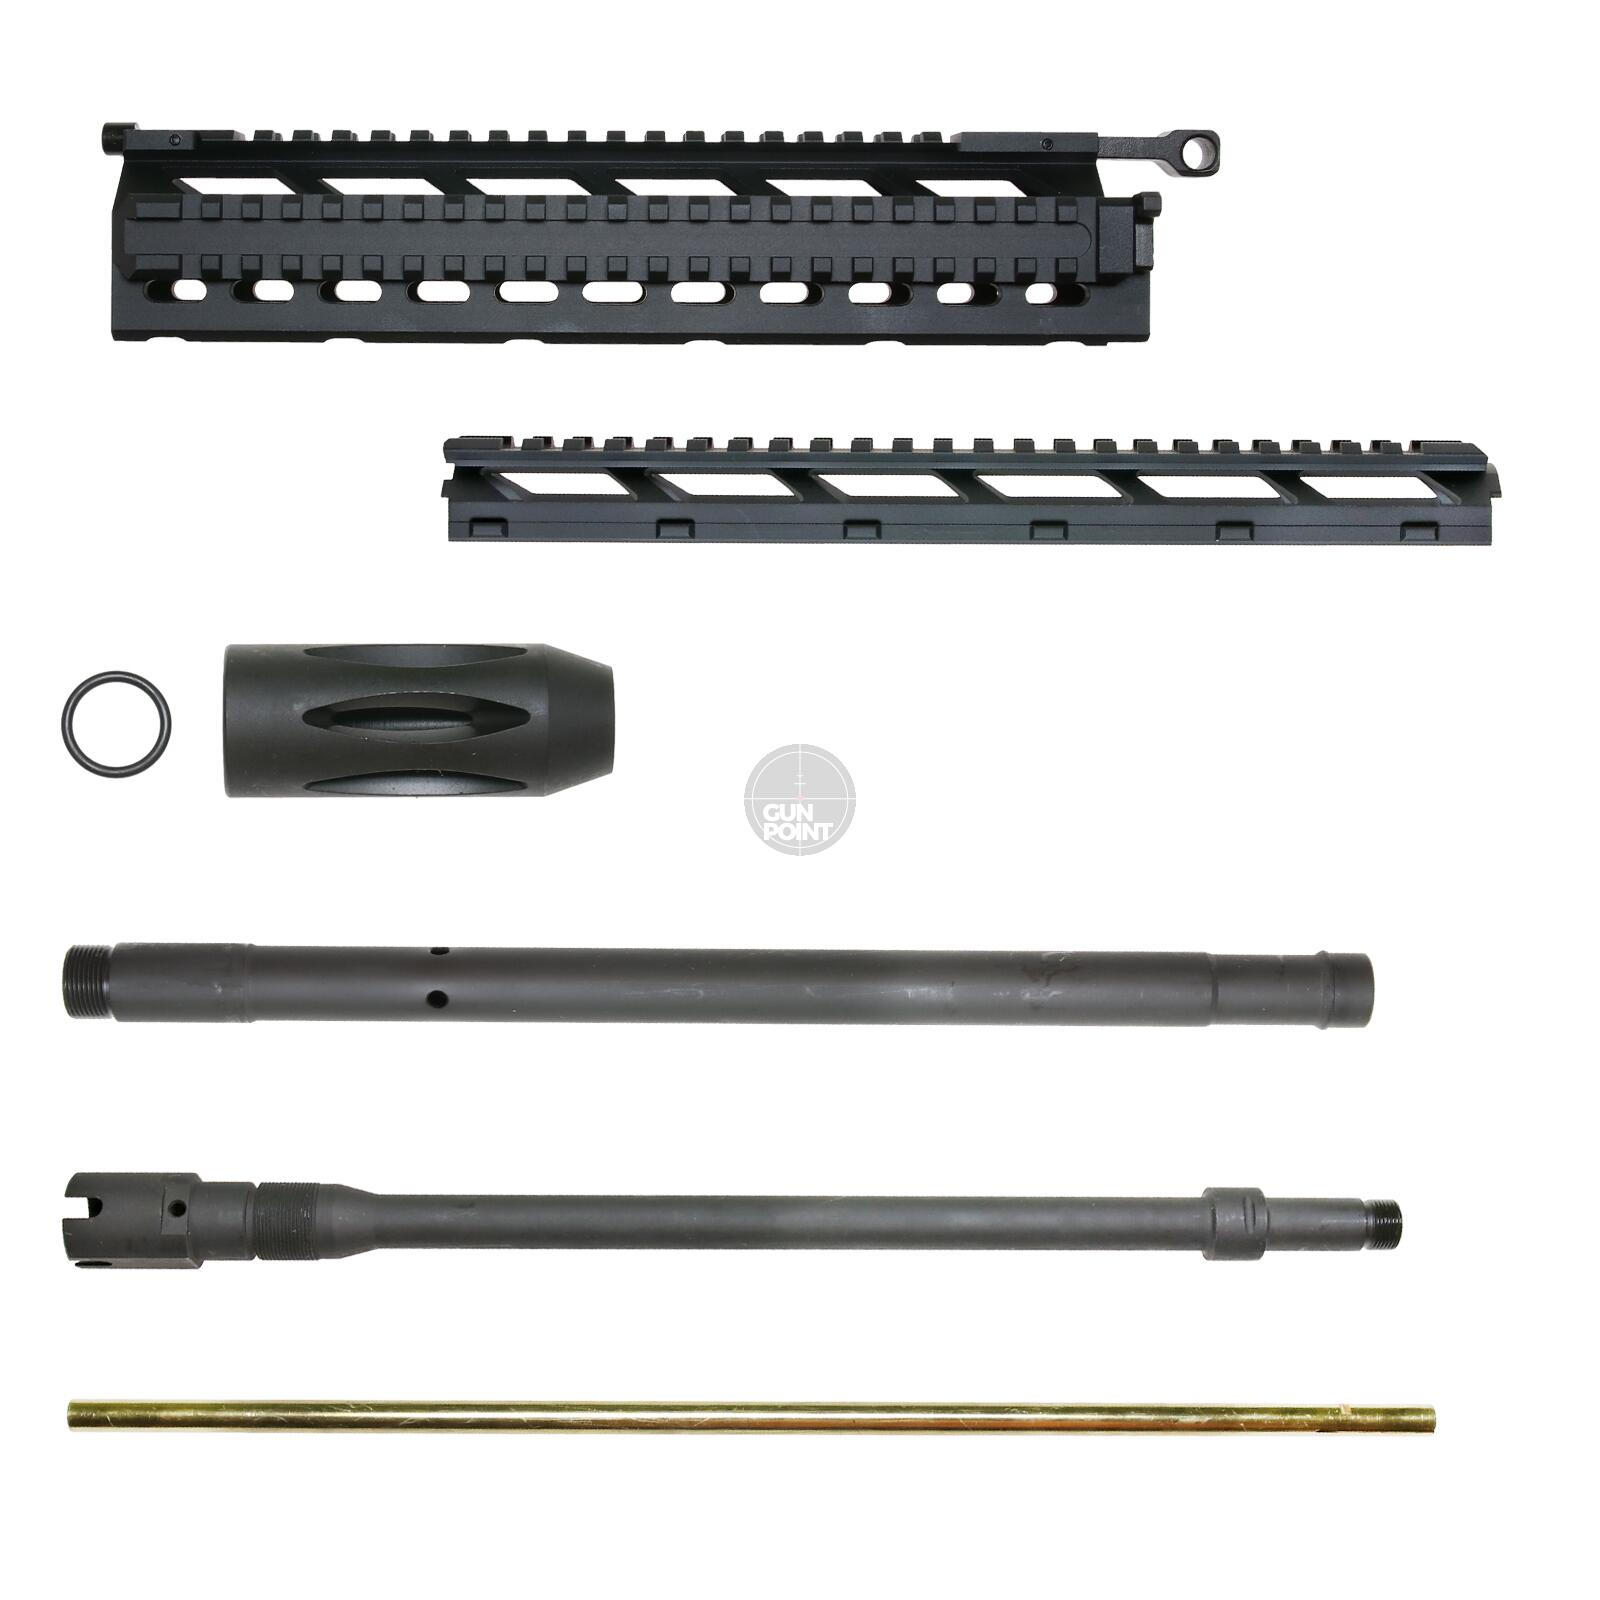 2nd Chance | GHK Conversion-Kit für 553 Serie